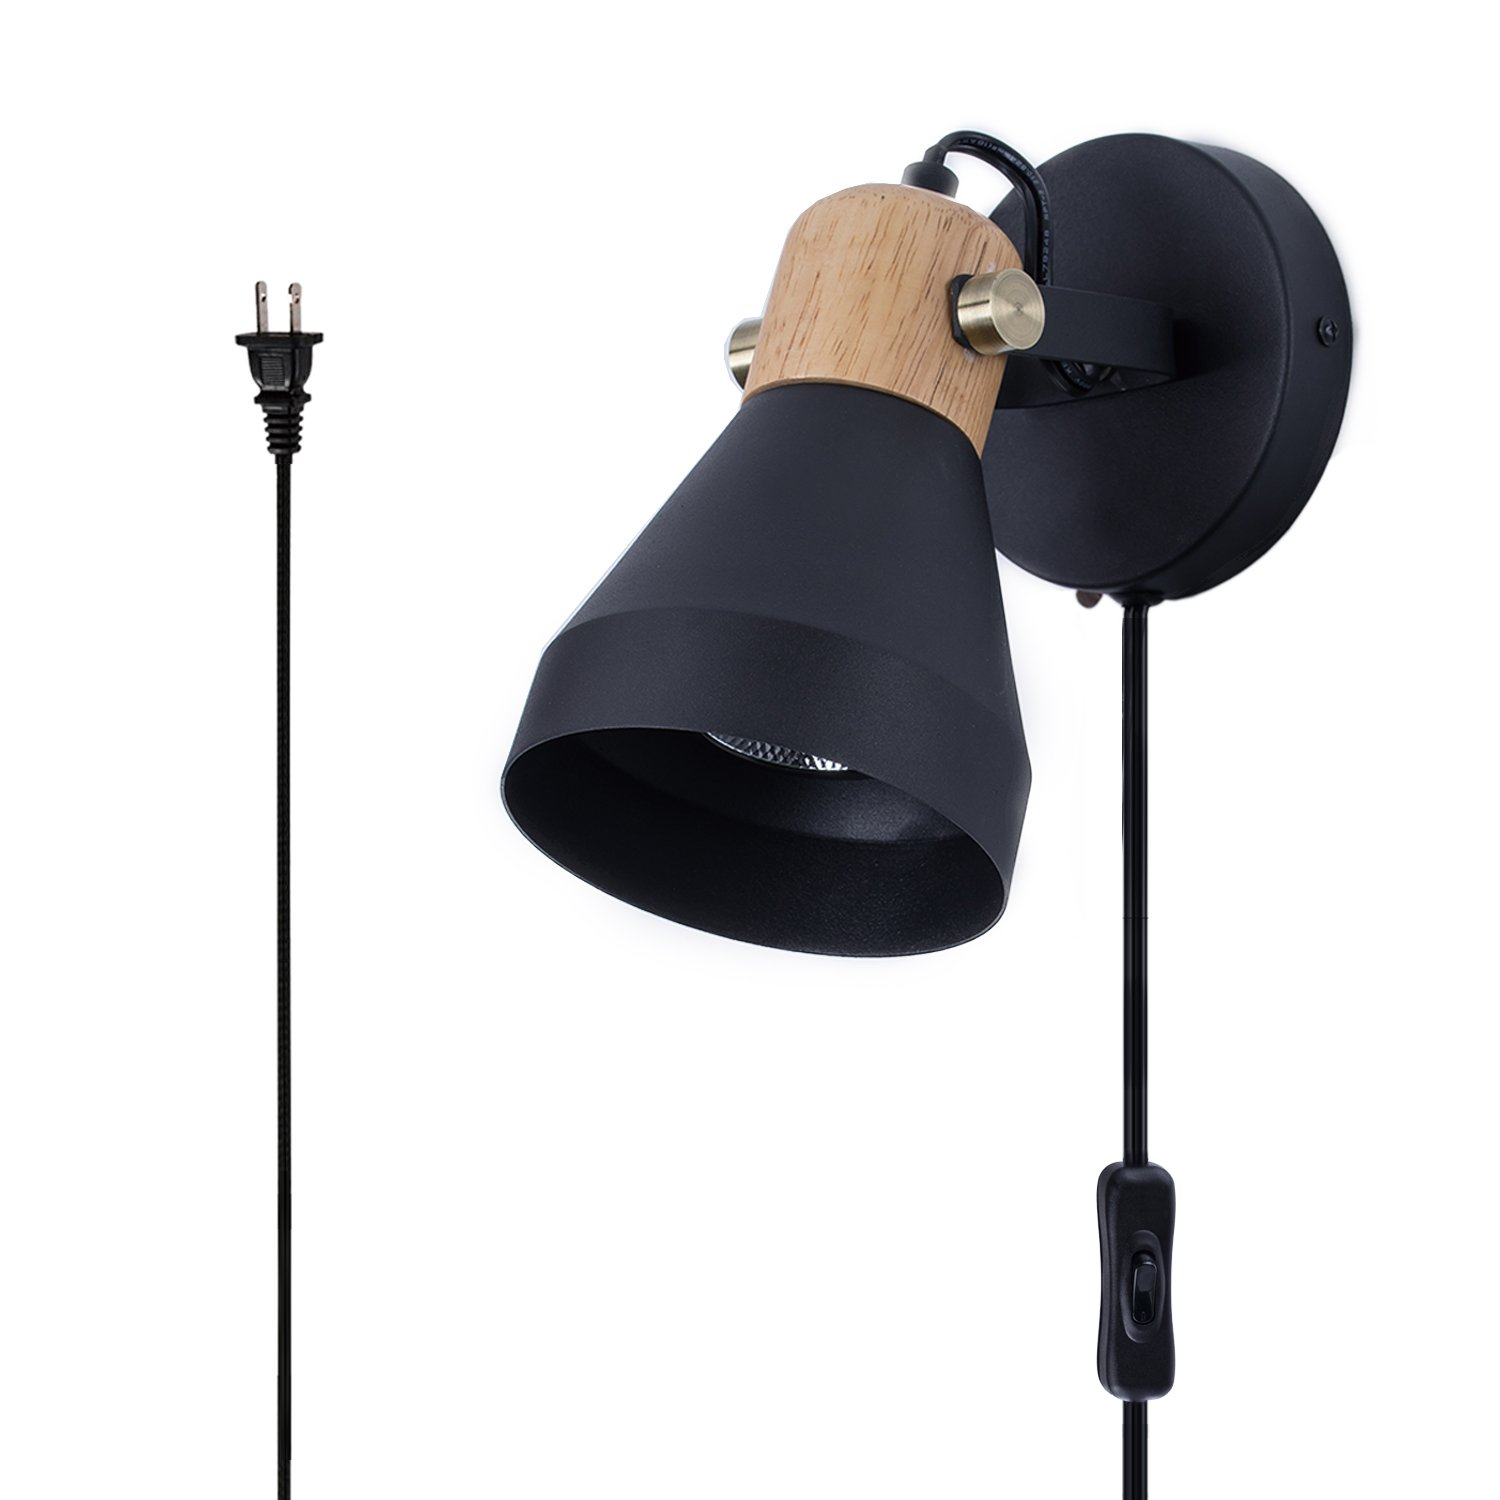 Minimalist Plug-in Wall Sconce Modern Black Wall Lamp with Cord Contemporary Rotatable Wall Light Fixture for Bedroom Living Room Bedside Lamp by BSM (Image #1)